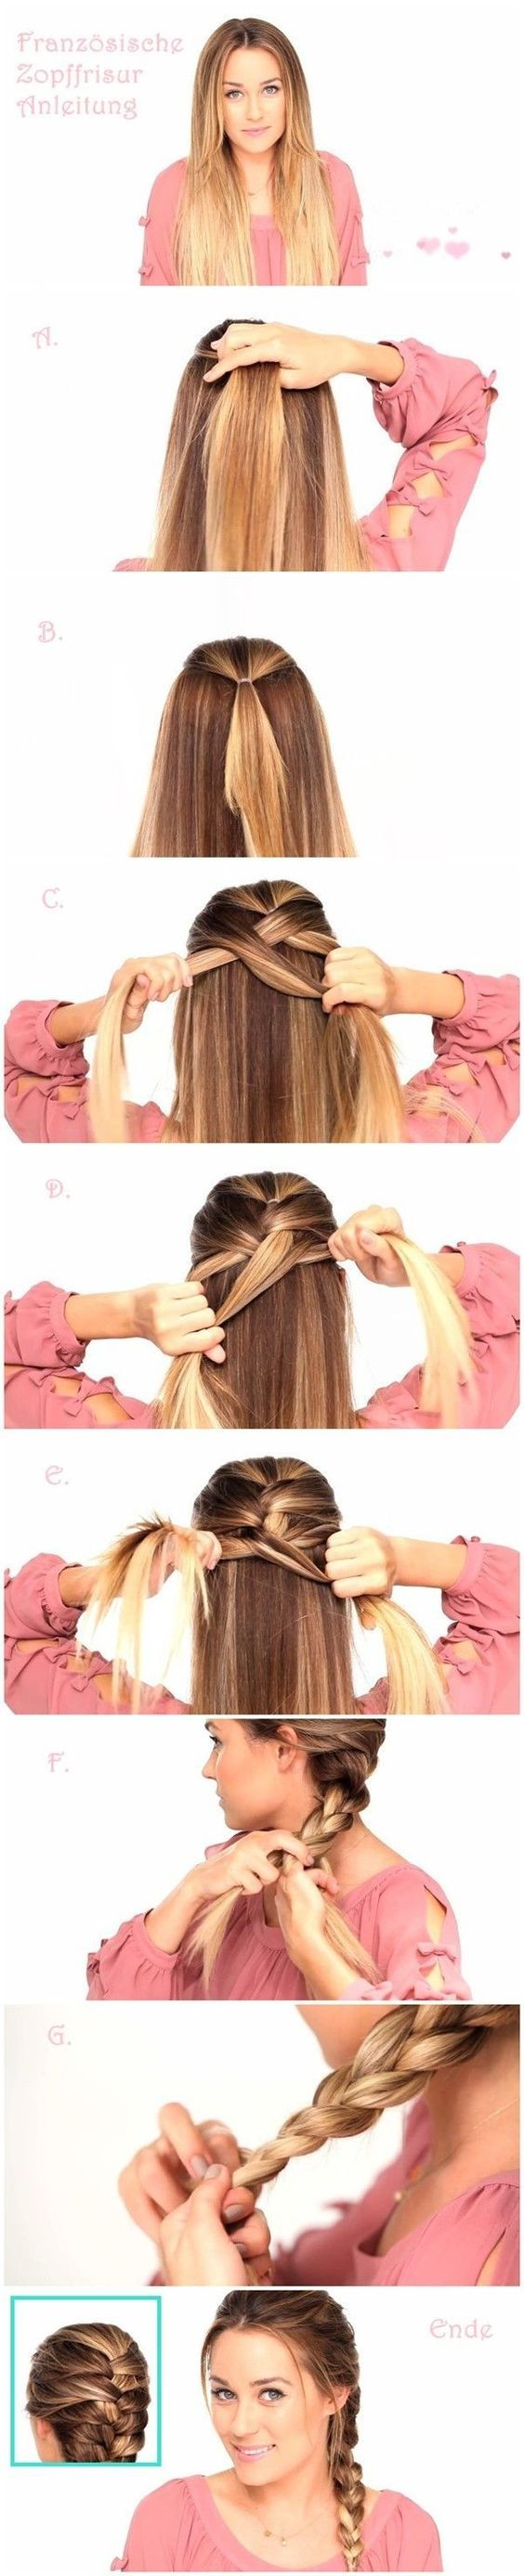 23 easy braided hairstyles 2017 easy braided hairstyles braid easy braided hairstyles to do yourself solutioingenieria Images